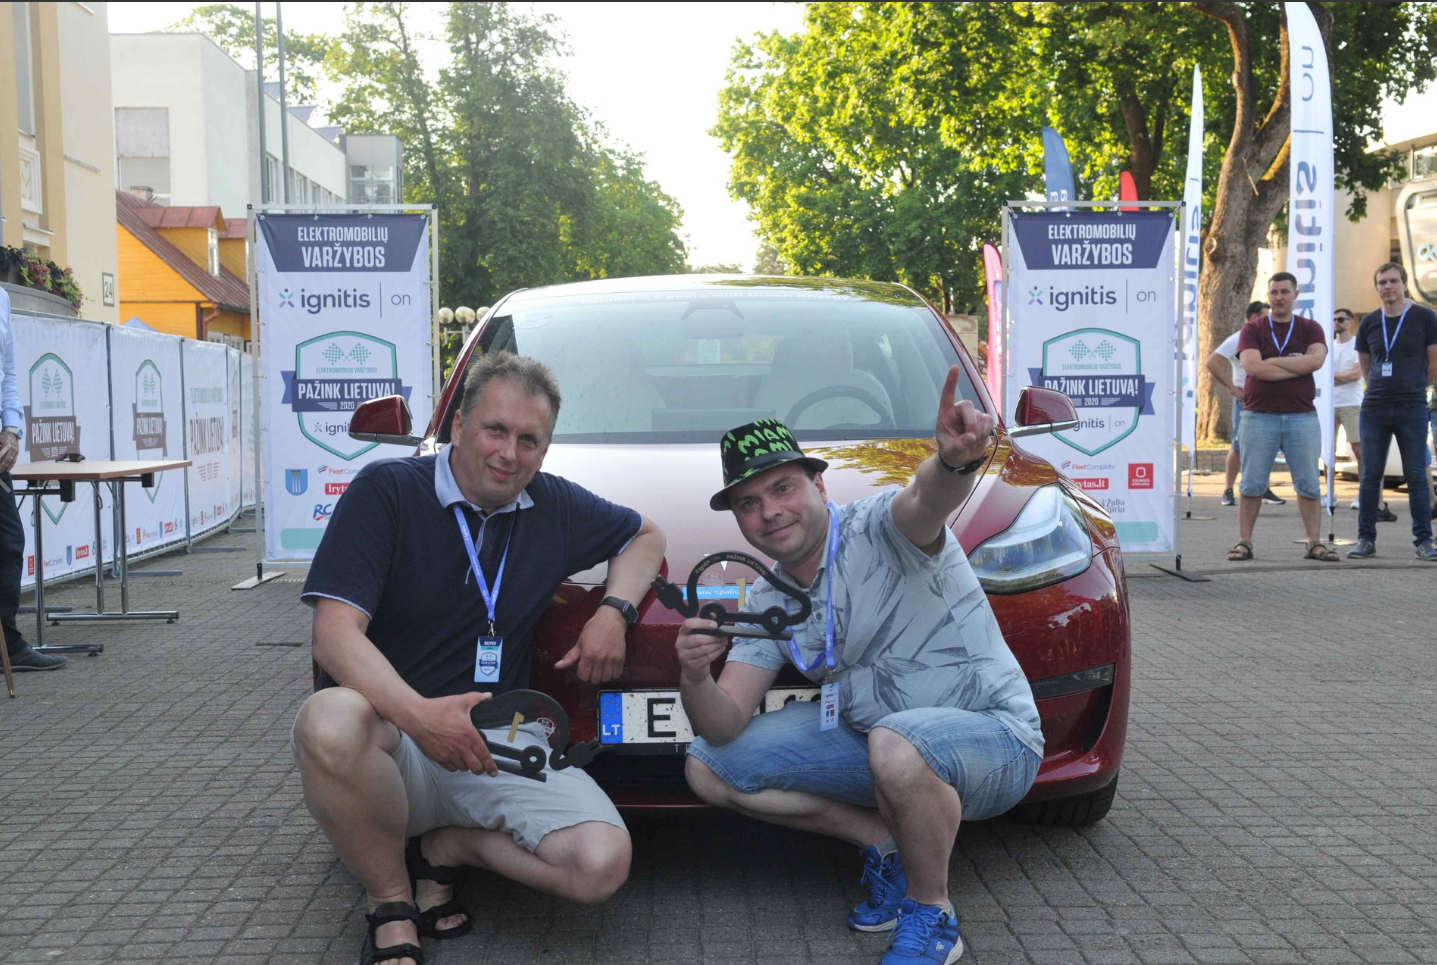 Tesla Model 3 and Peugeot e-208 crews triumphed in electric car competition